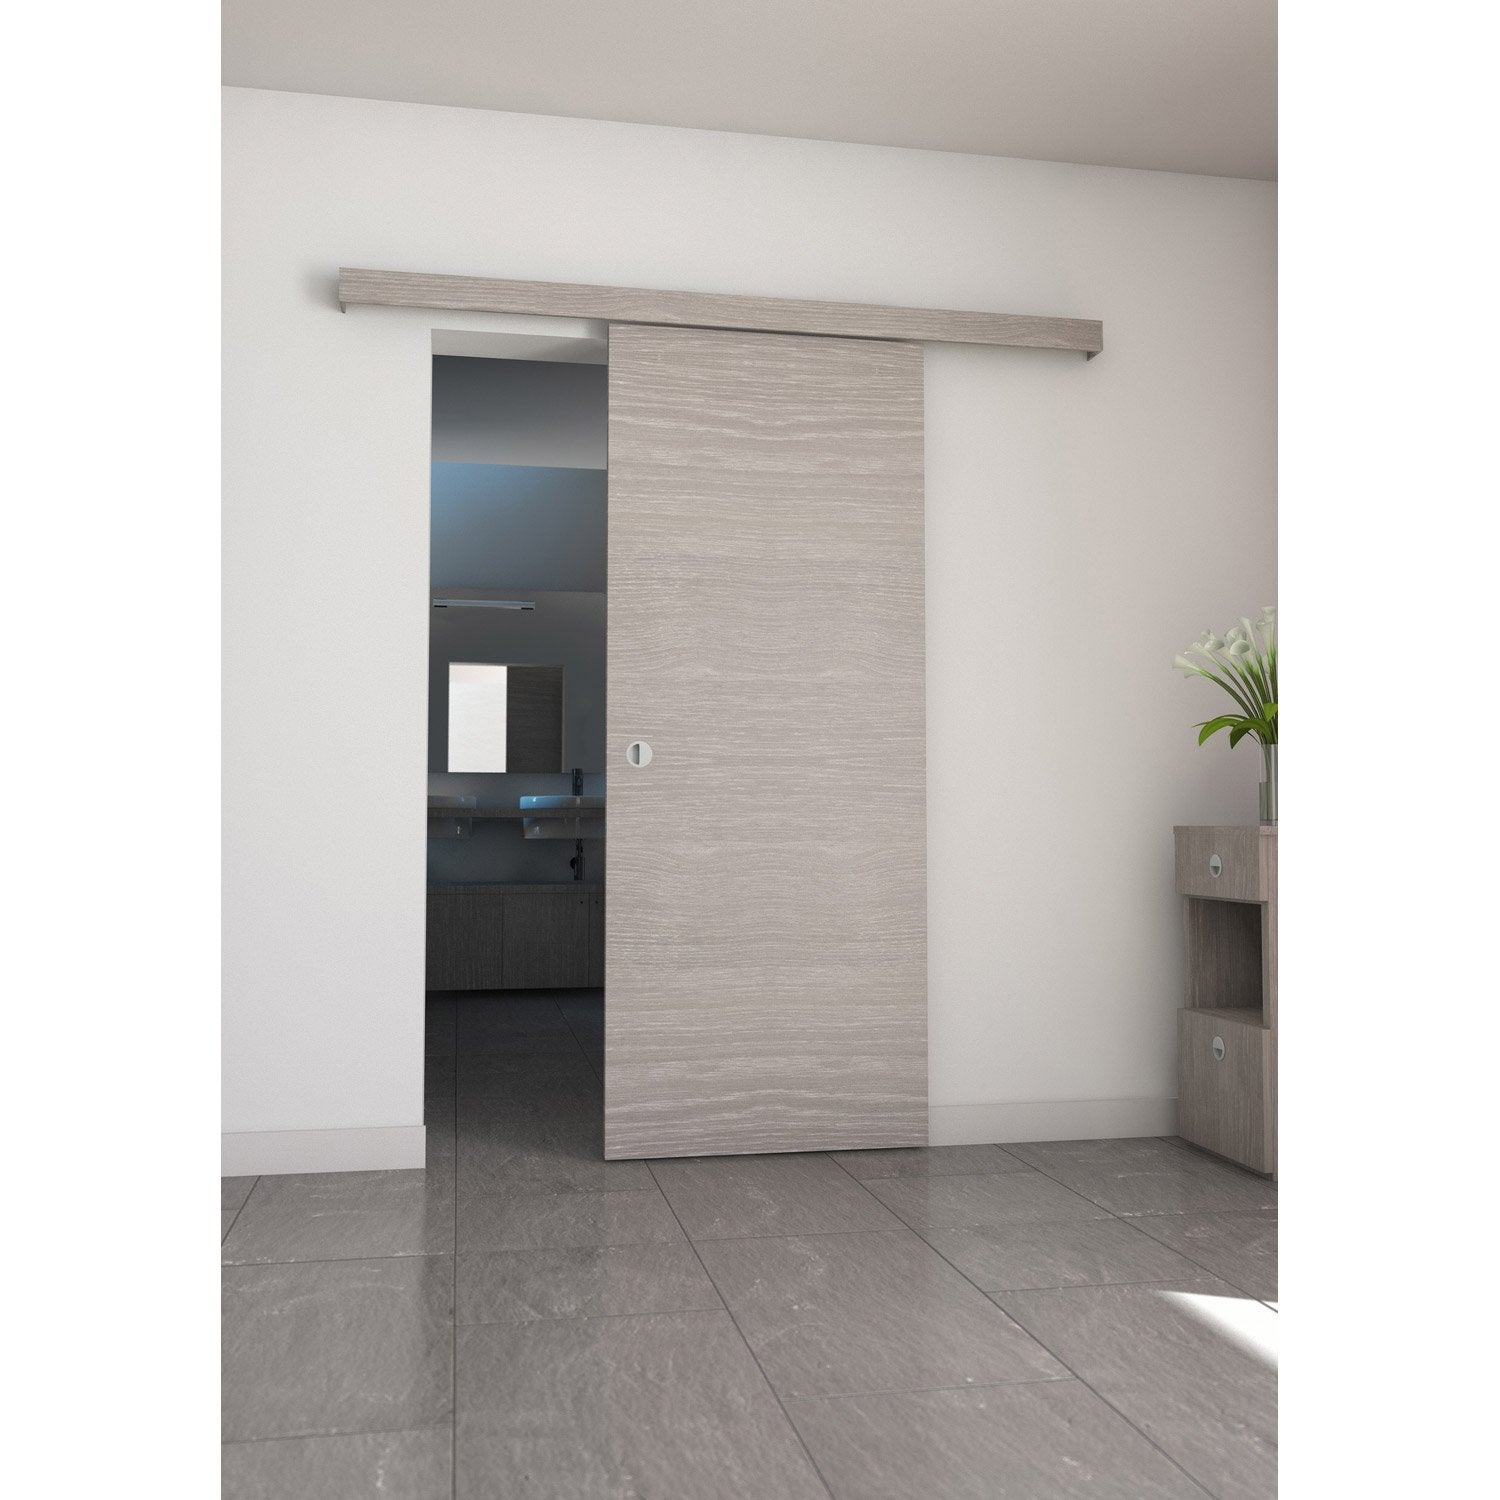 Ensemble porte coulissante coulicool mdf rev tu aluminium for Porte en verre coulissante leroy merlin